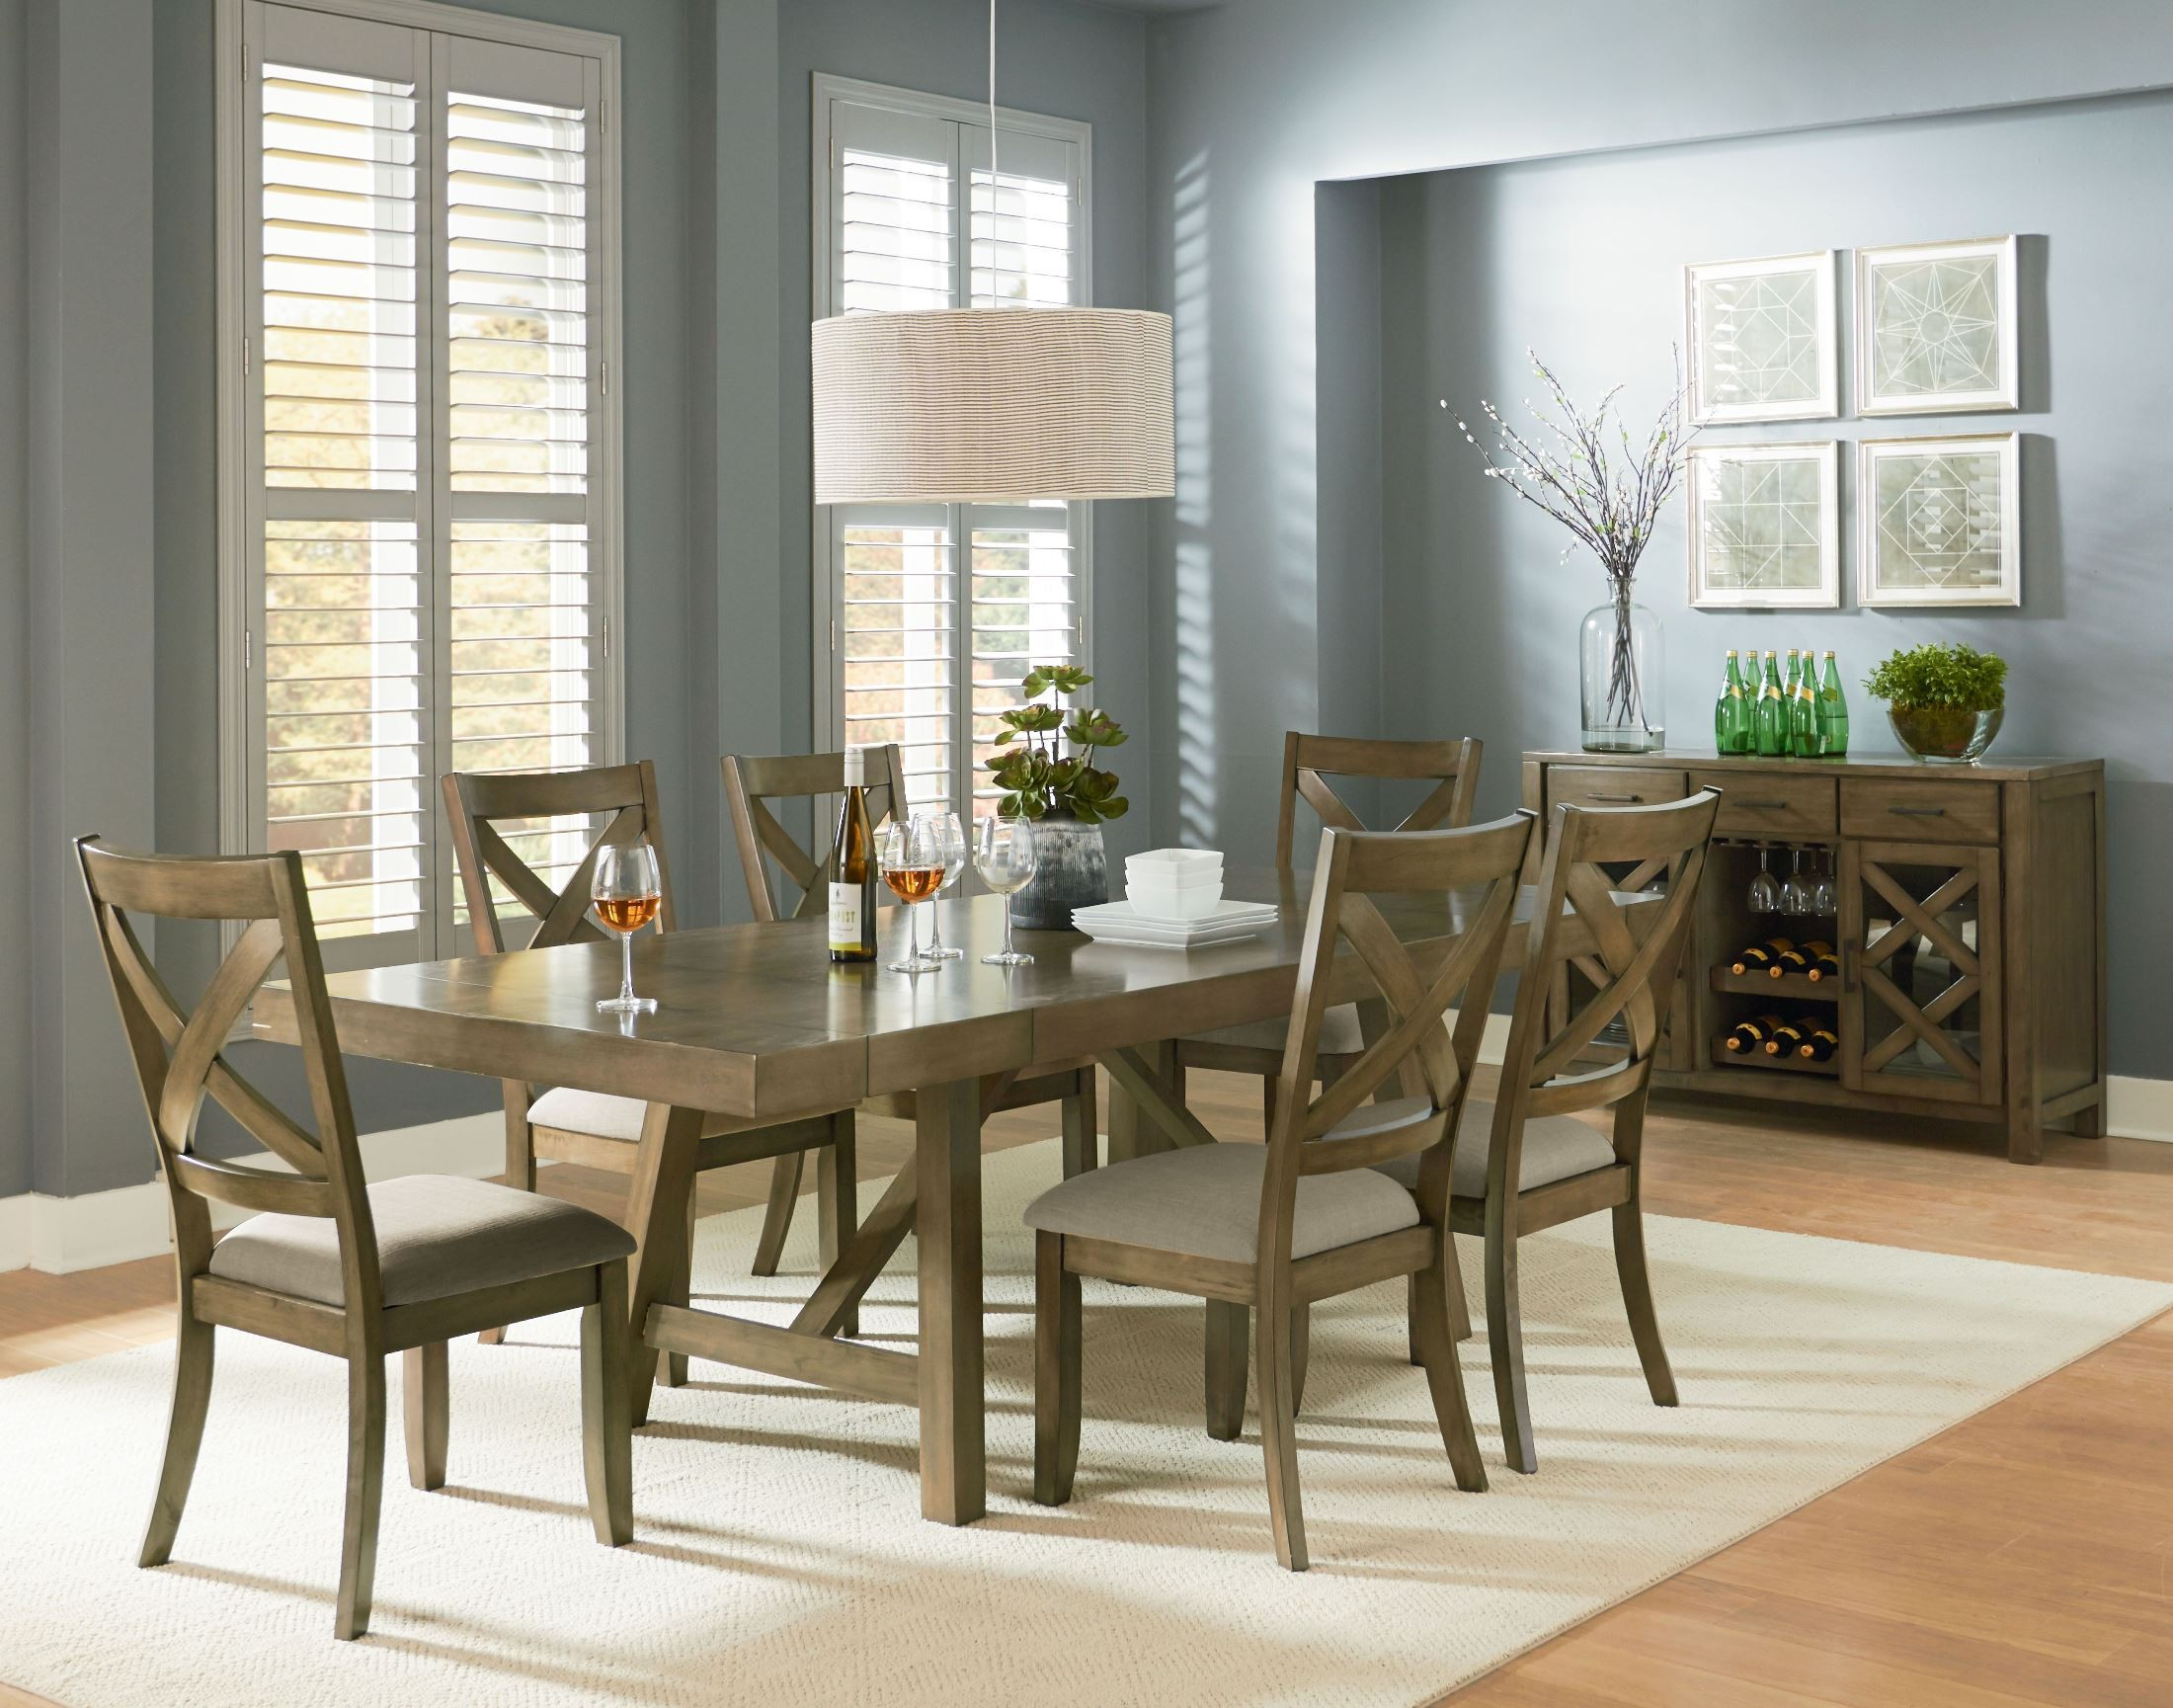 Omaha weathered burnished gray extendable trestle dining room set 16681 standard furniture - Dining room sets ...